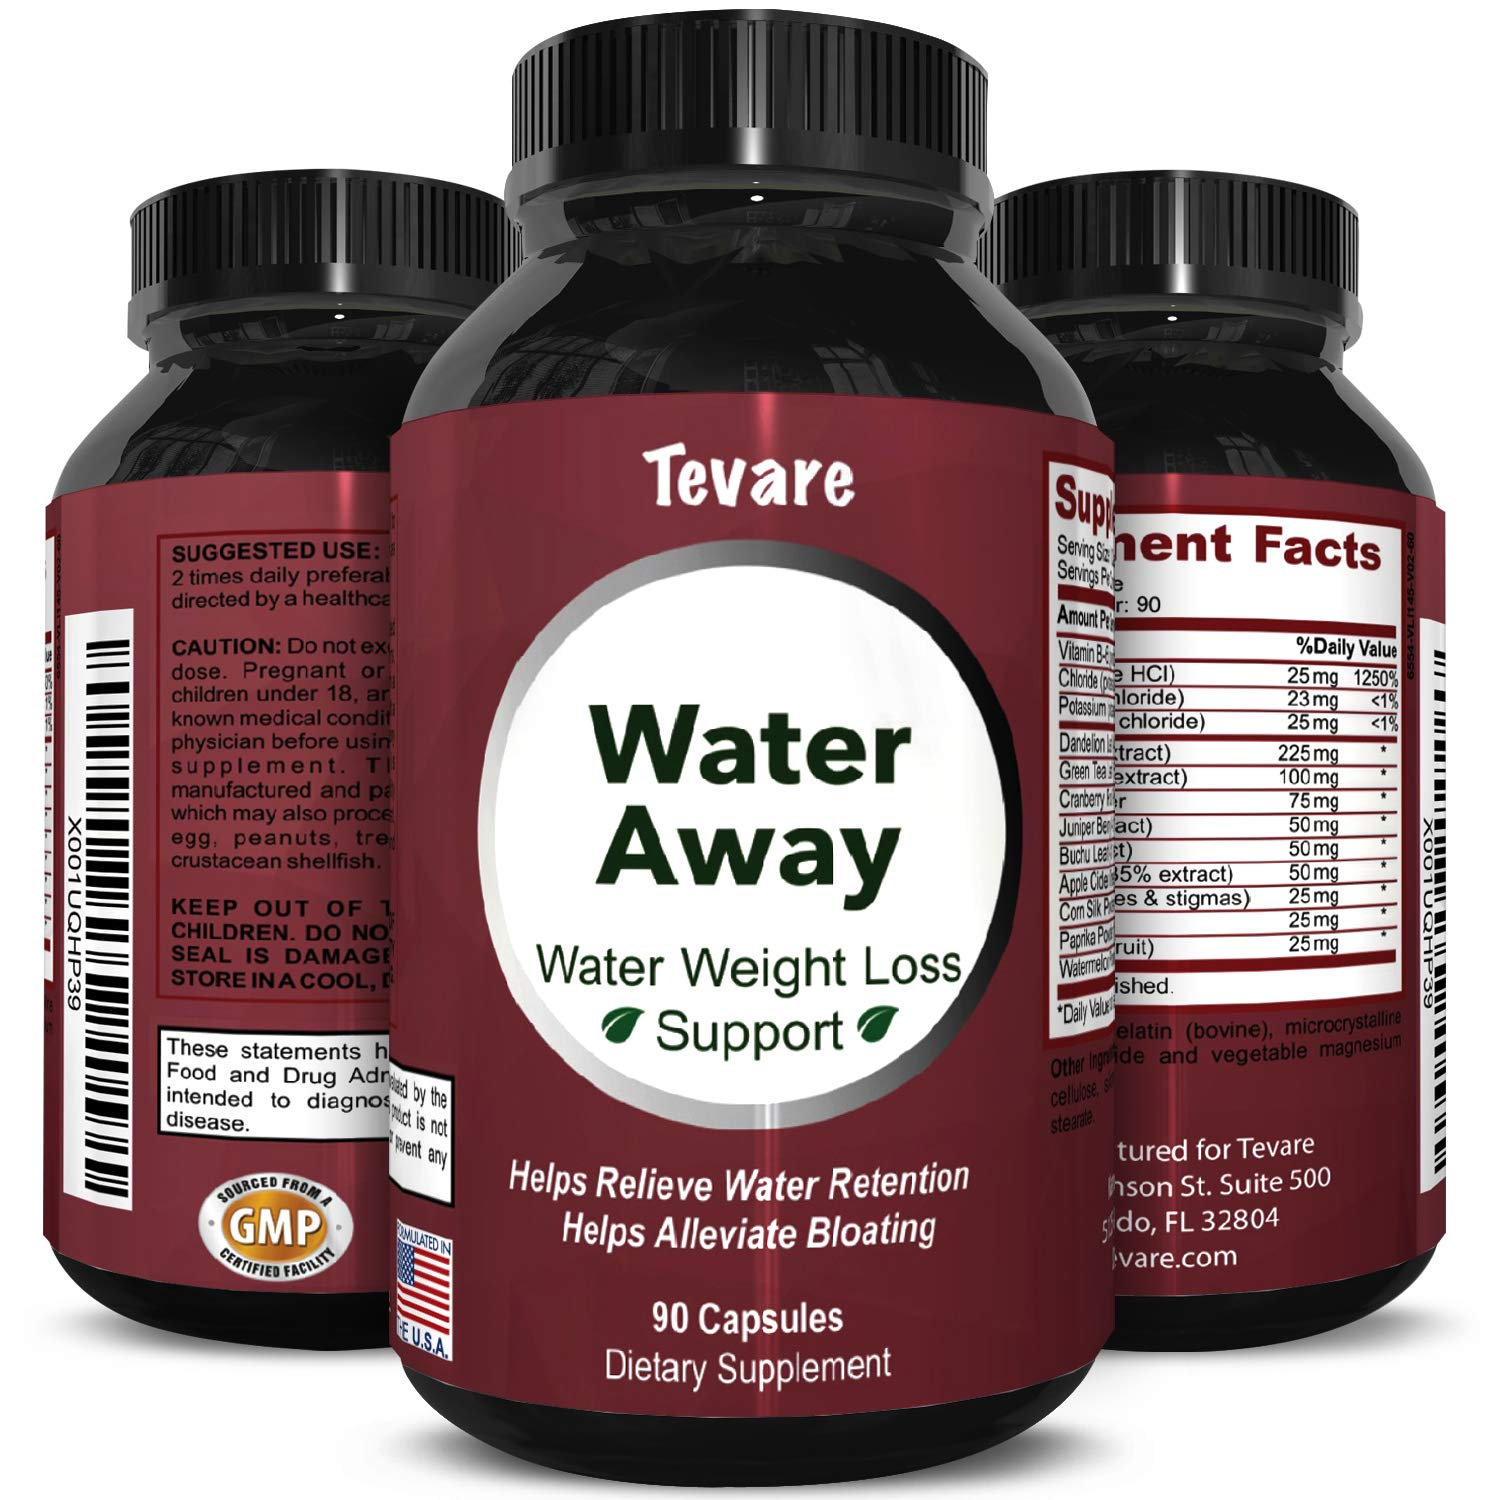 Water Away Diuretic Pills - Natural Water Weight Loss Support for Men and Women Fast Acting Bloating Swelling Relief Supplement - Pure Vitamin B6 Dandelion Green Tea Extract 90 Capsules by Tevare by Tevare